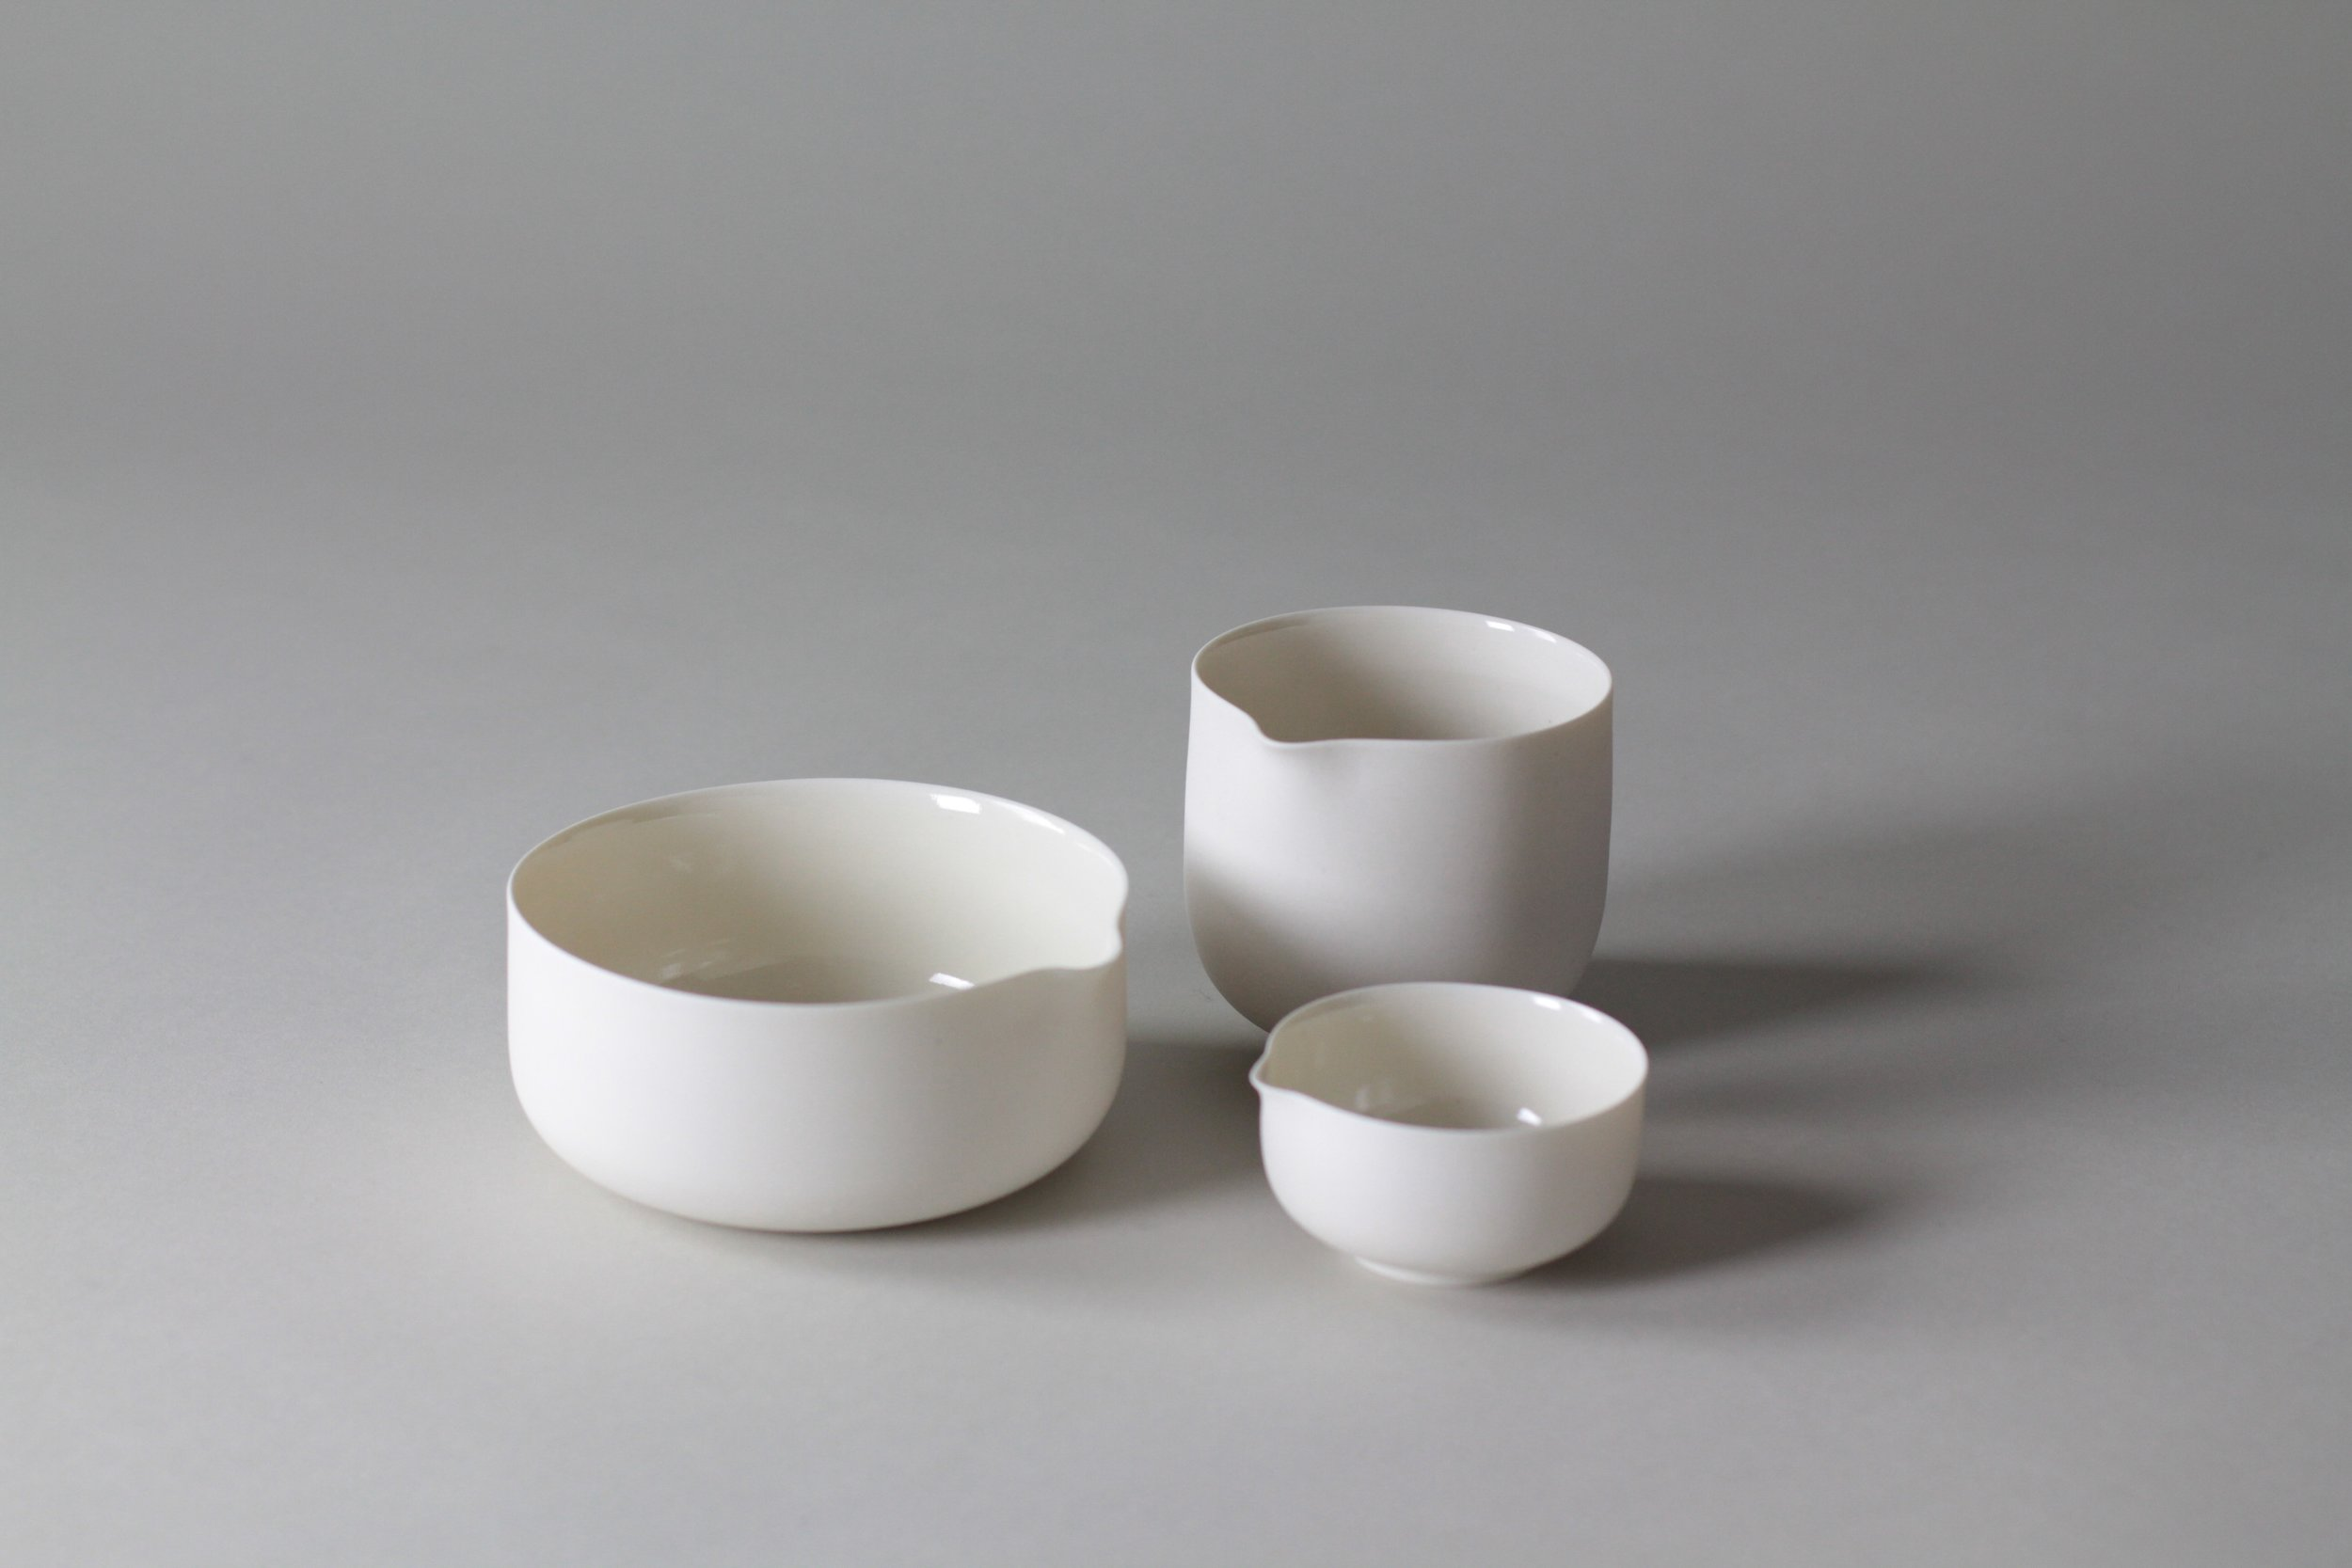 Ceramic tableware pourers and bowl by Lilith Rockett, Portland, Oregon